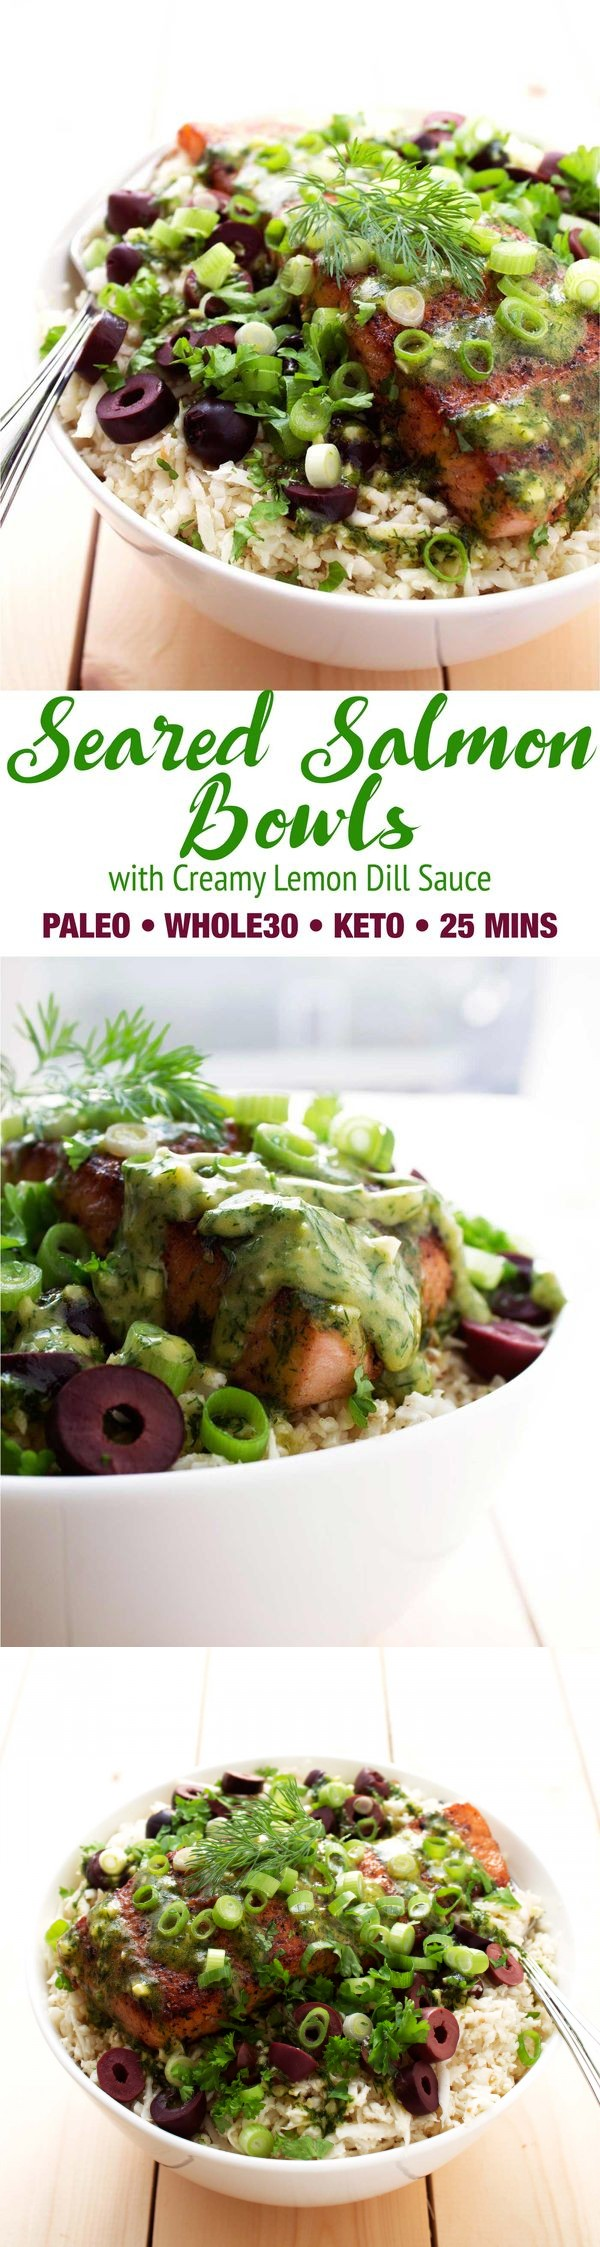 Seared Salmon Bowls with Creamy Lemon Dill Sauce